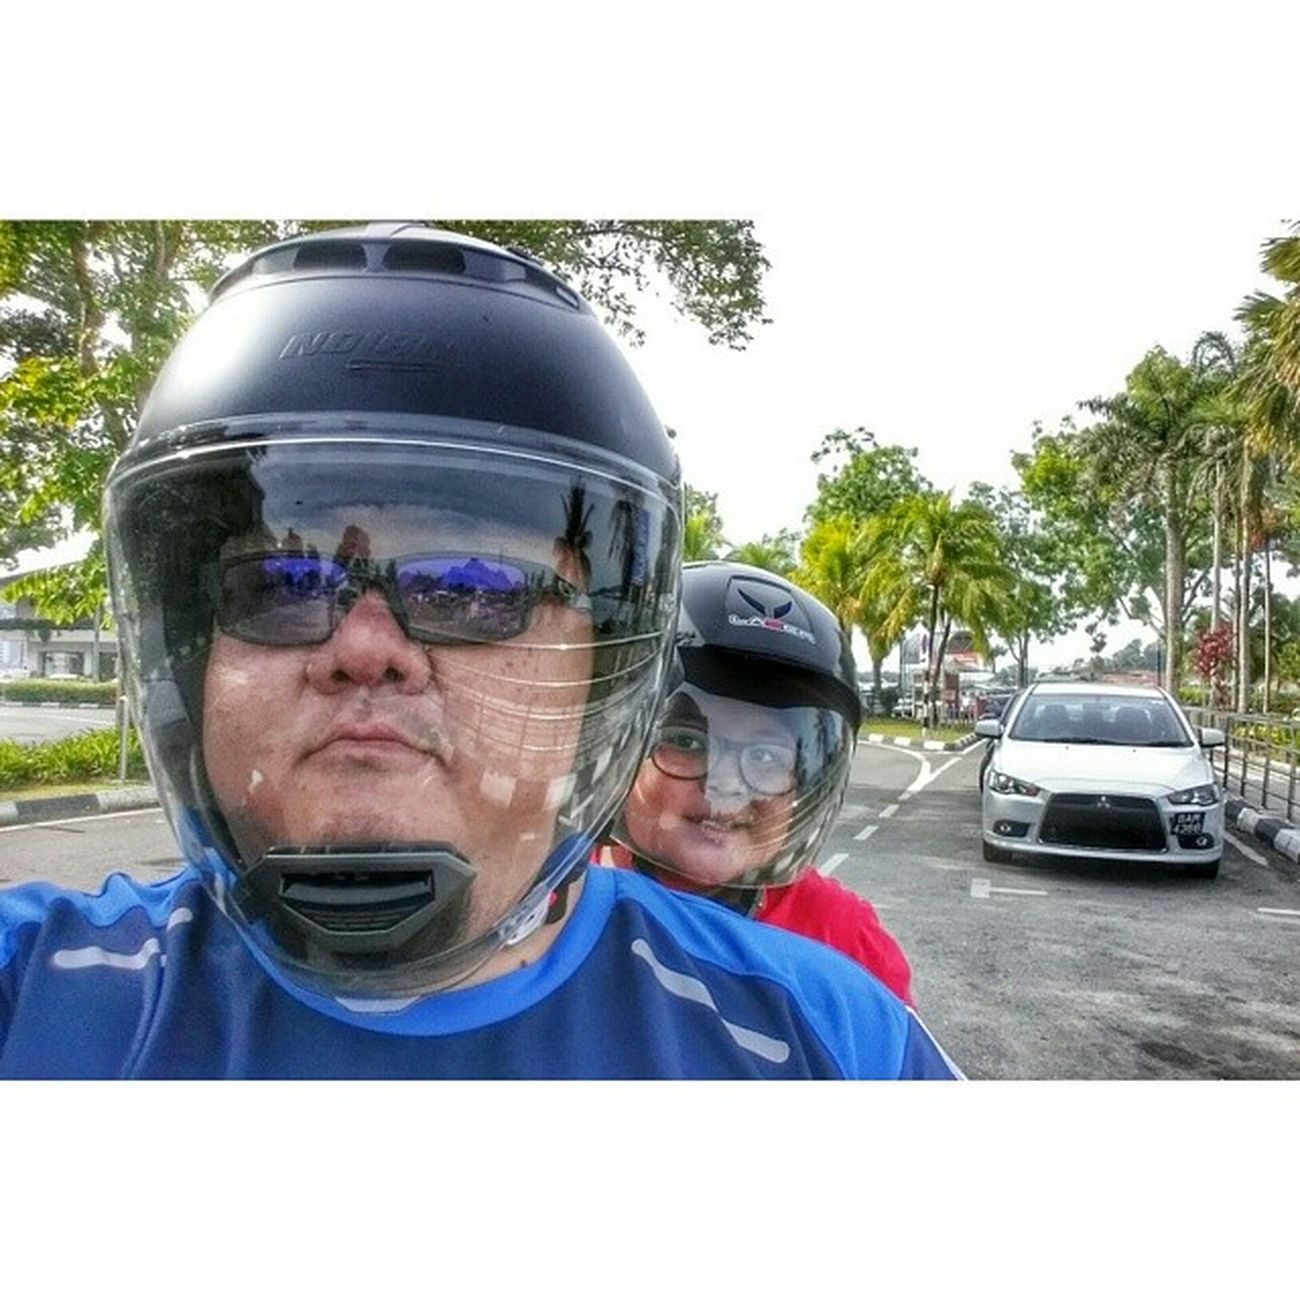 Bonceng breakfast ride with da little guy Weekend Brunei Wearehappybrunei HappyBrunei happybn bruneiunited HappeningsBN InstaBruDroid Andrography